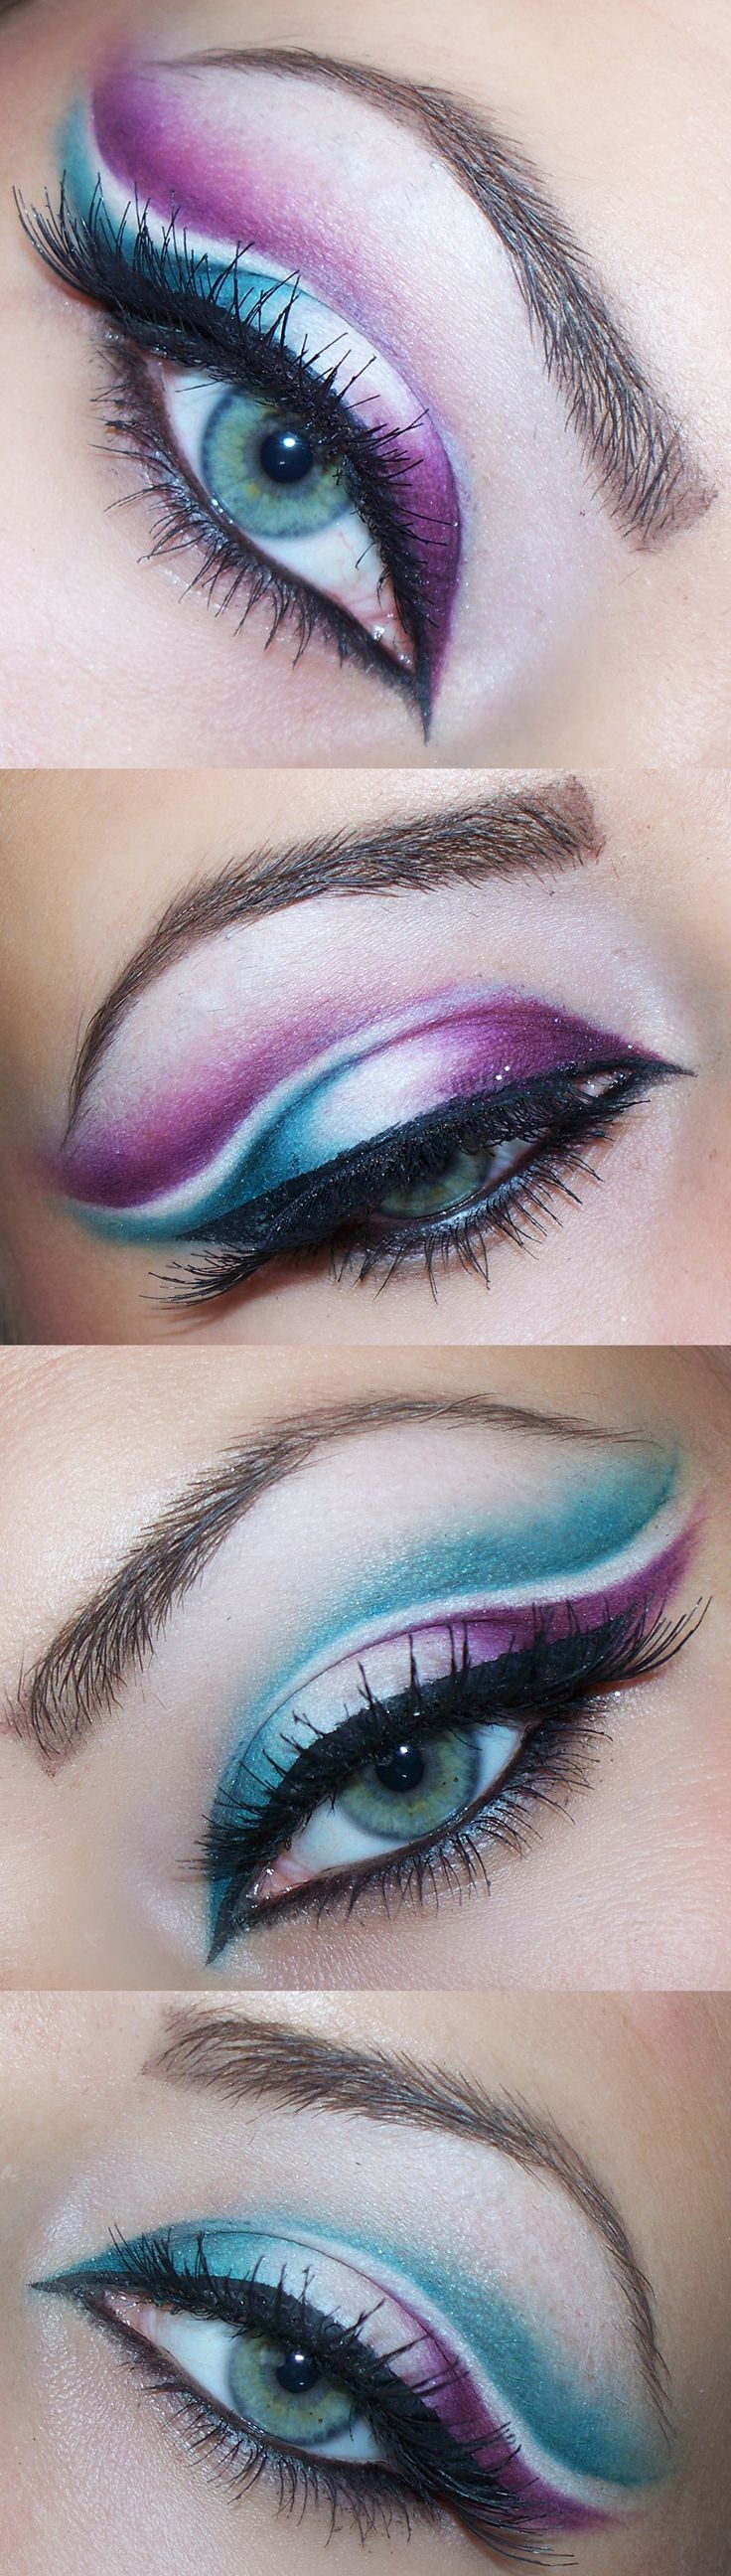 The Best Eyeshadow for Blue Eyes...........Two-colored makeup.